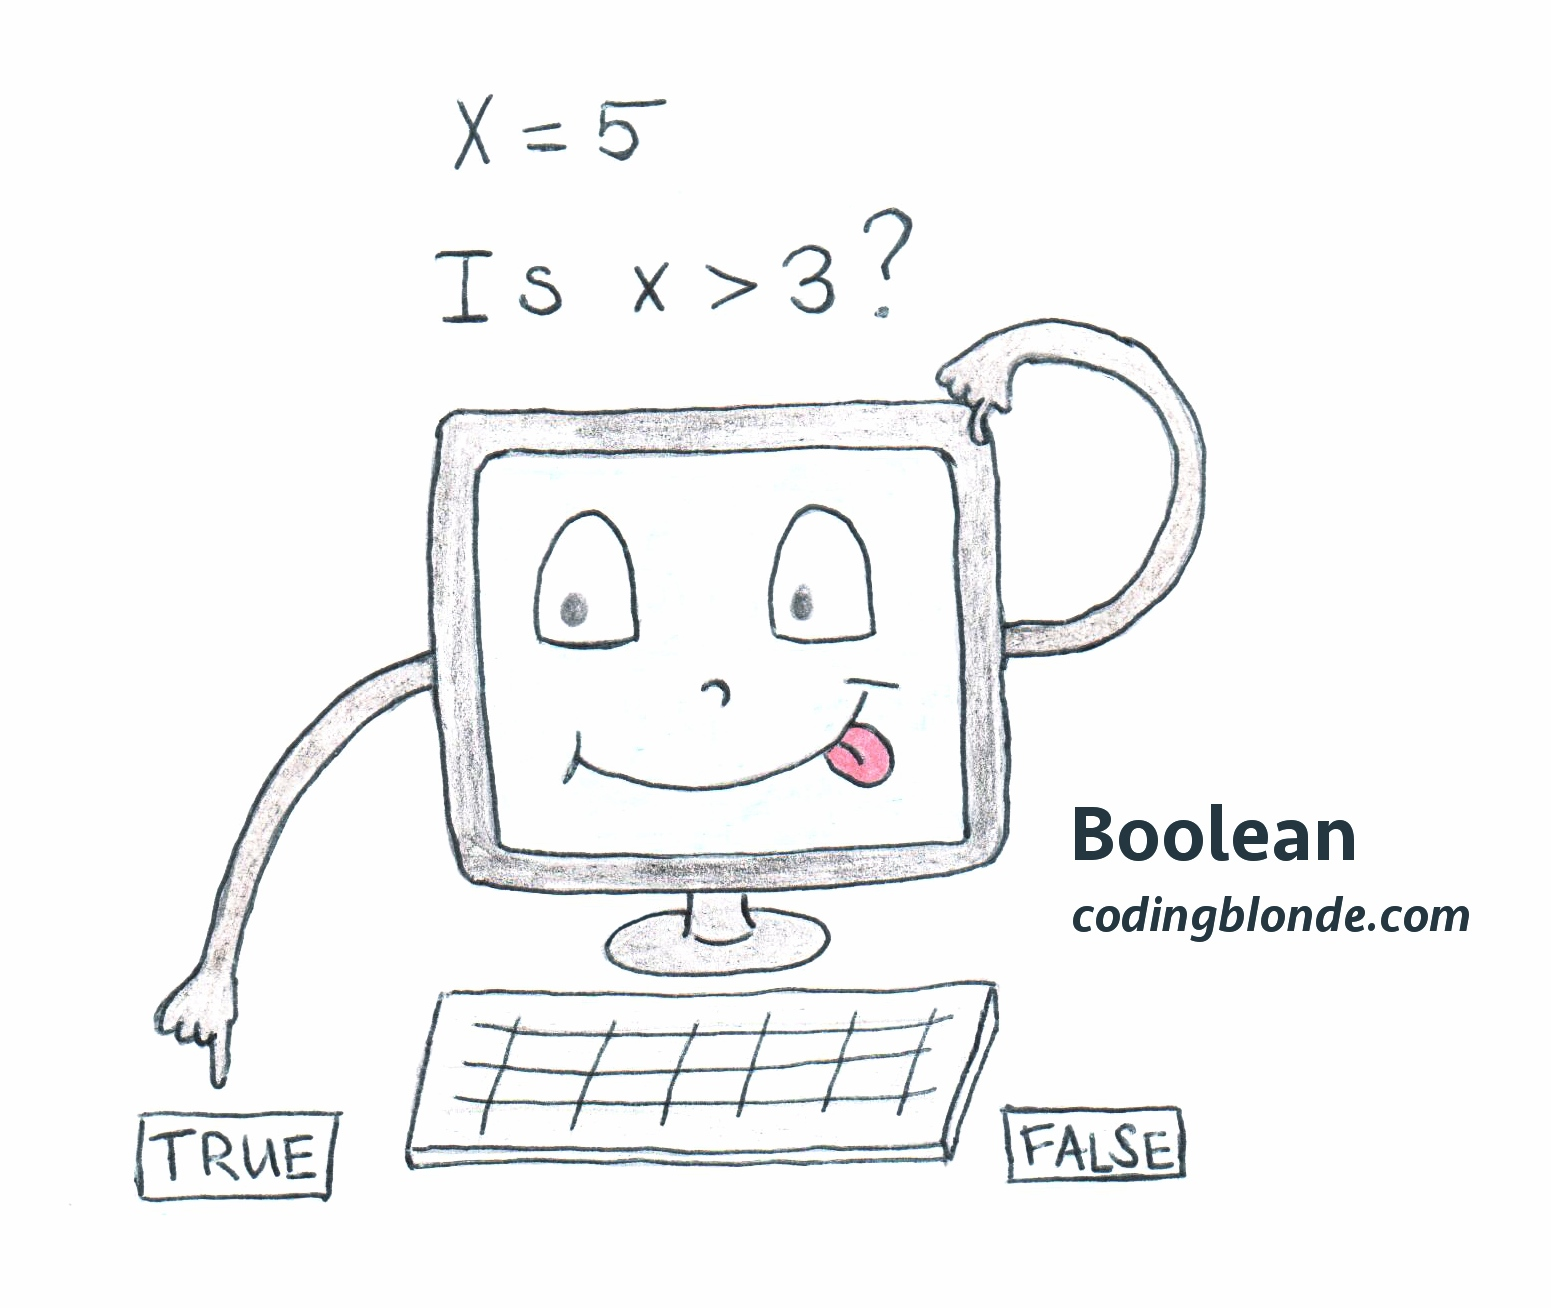 This is kind of what happens behind the scene with booleans